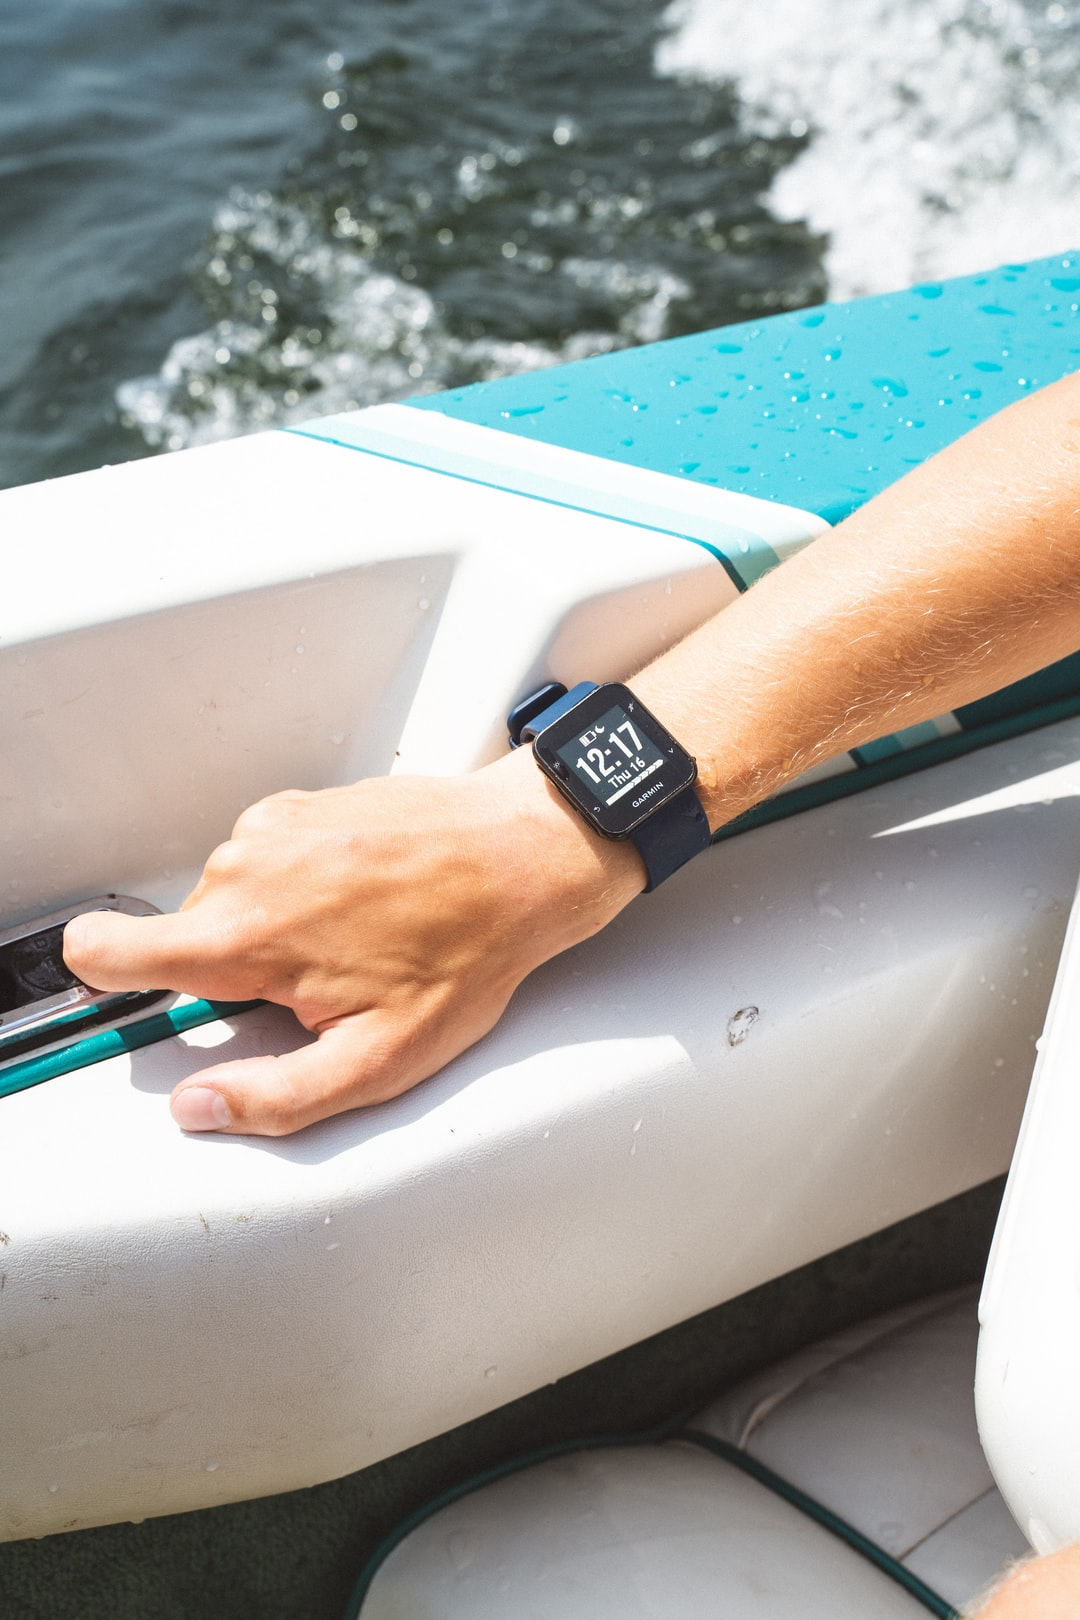 Wrist watch on boat